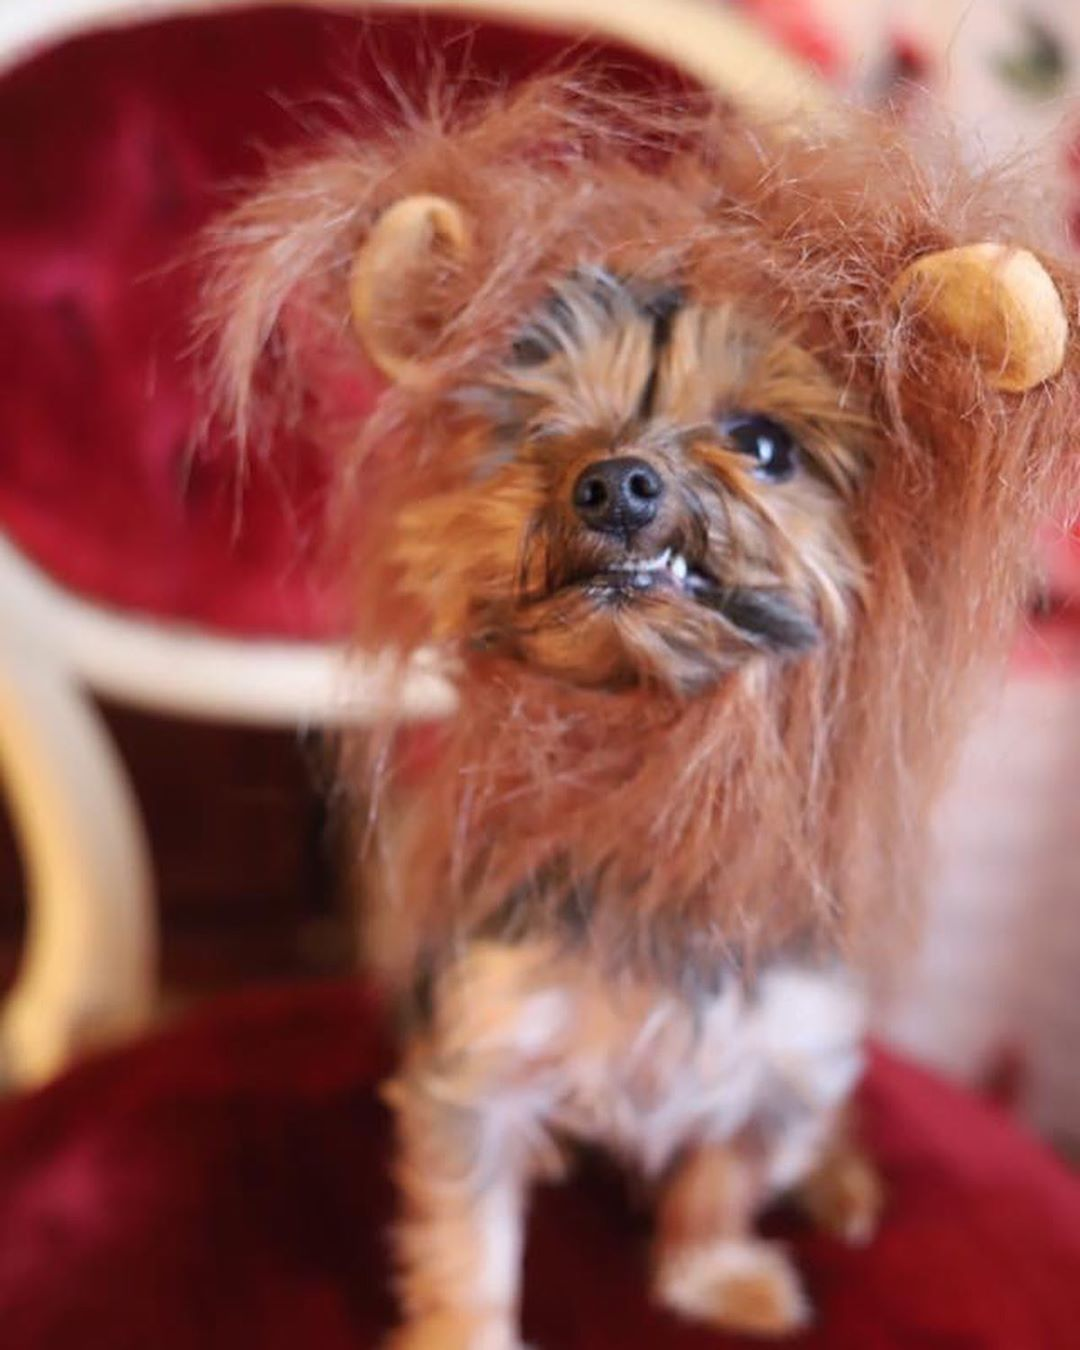 Miniature Yorkshire Terrier Yorkie Costumes For Halloween Yorkie Miniature Yorkshire Terrier Yorkie Dogs